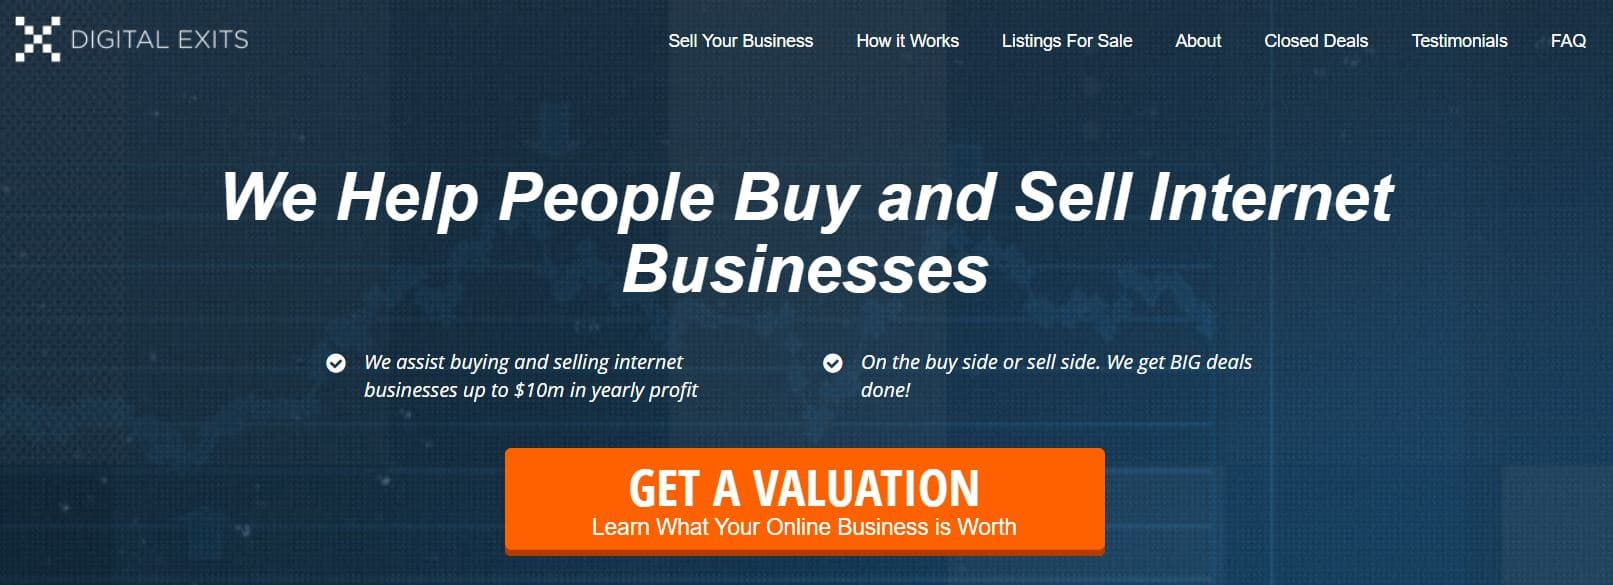 buy businesses online